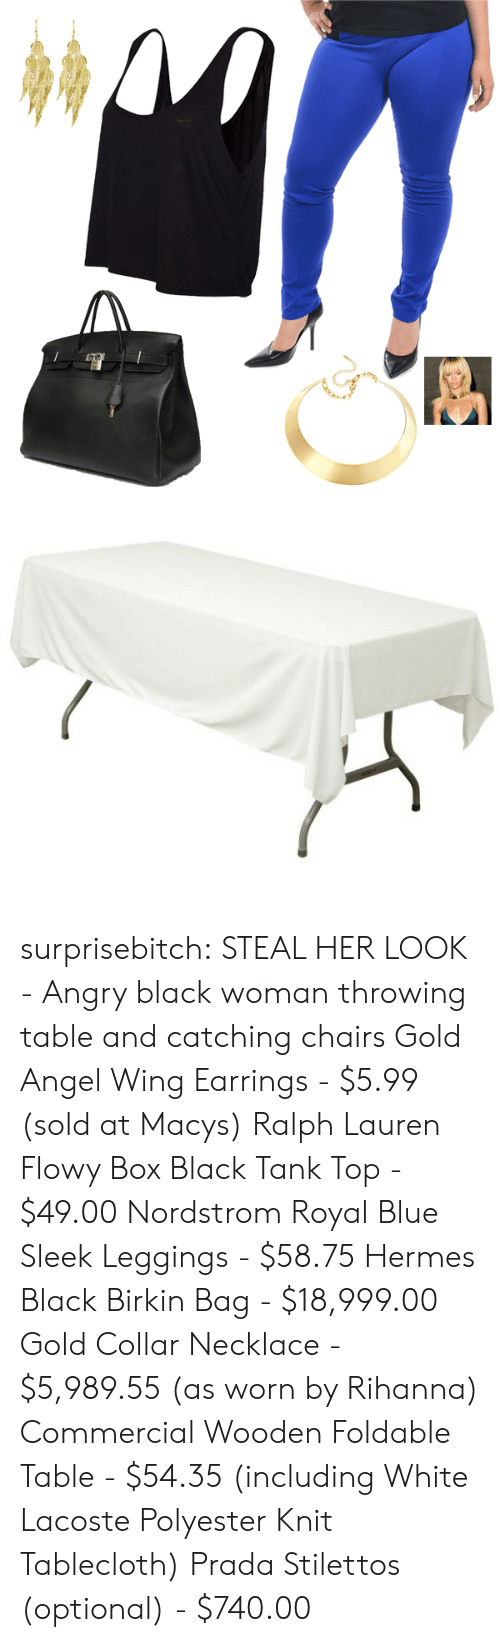 Ralph Lauren: surprisebitch:  STEAL HER LOOK - Angry black woman throwing table and catching chairs Gold Angel Wing Earrings - $5.99 (sold at Macys) Ralph Lauren Flowy Box Black Tank Top - $49.00 Nordstrom Royal Blue Sleek Leggings - $58.75 Hermes Black Birkin Bag - $18,999.00 Gold Collar Necklace - $5,989.55 (as worn by Rihanna) Commercial Wooden Foldable Table - $54.35 (including White Lacoste Polyester Knit Tablecloth) Prada Stilettos (optional) - $740.00